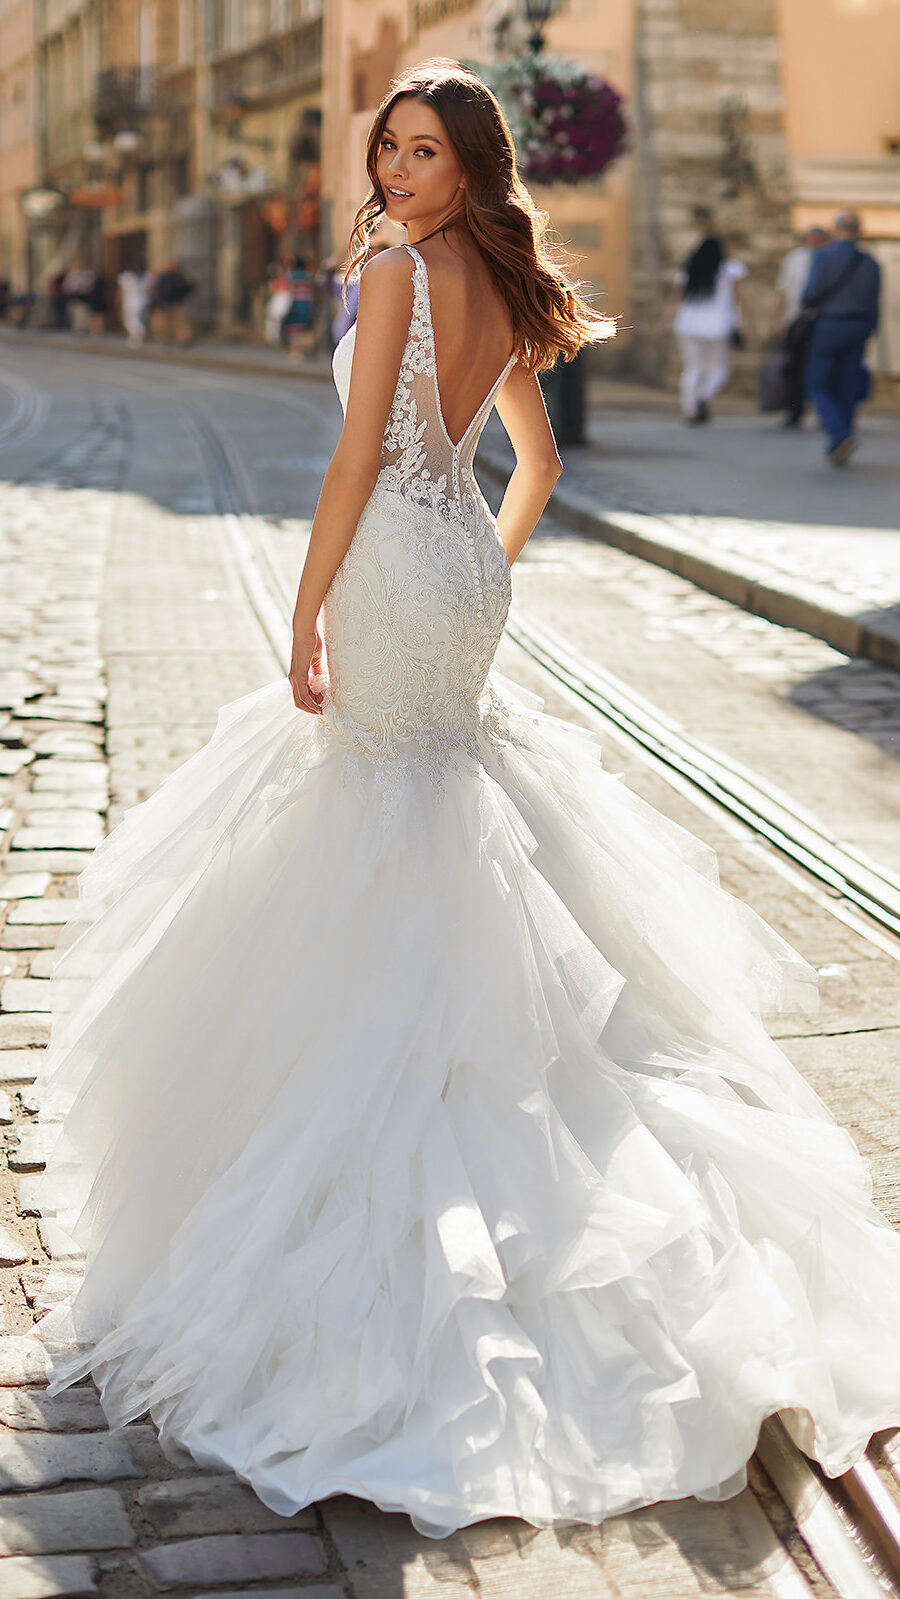 Designer Wedding Dresses by Moonlight Couture 2022 Bridal Collection - H1486